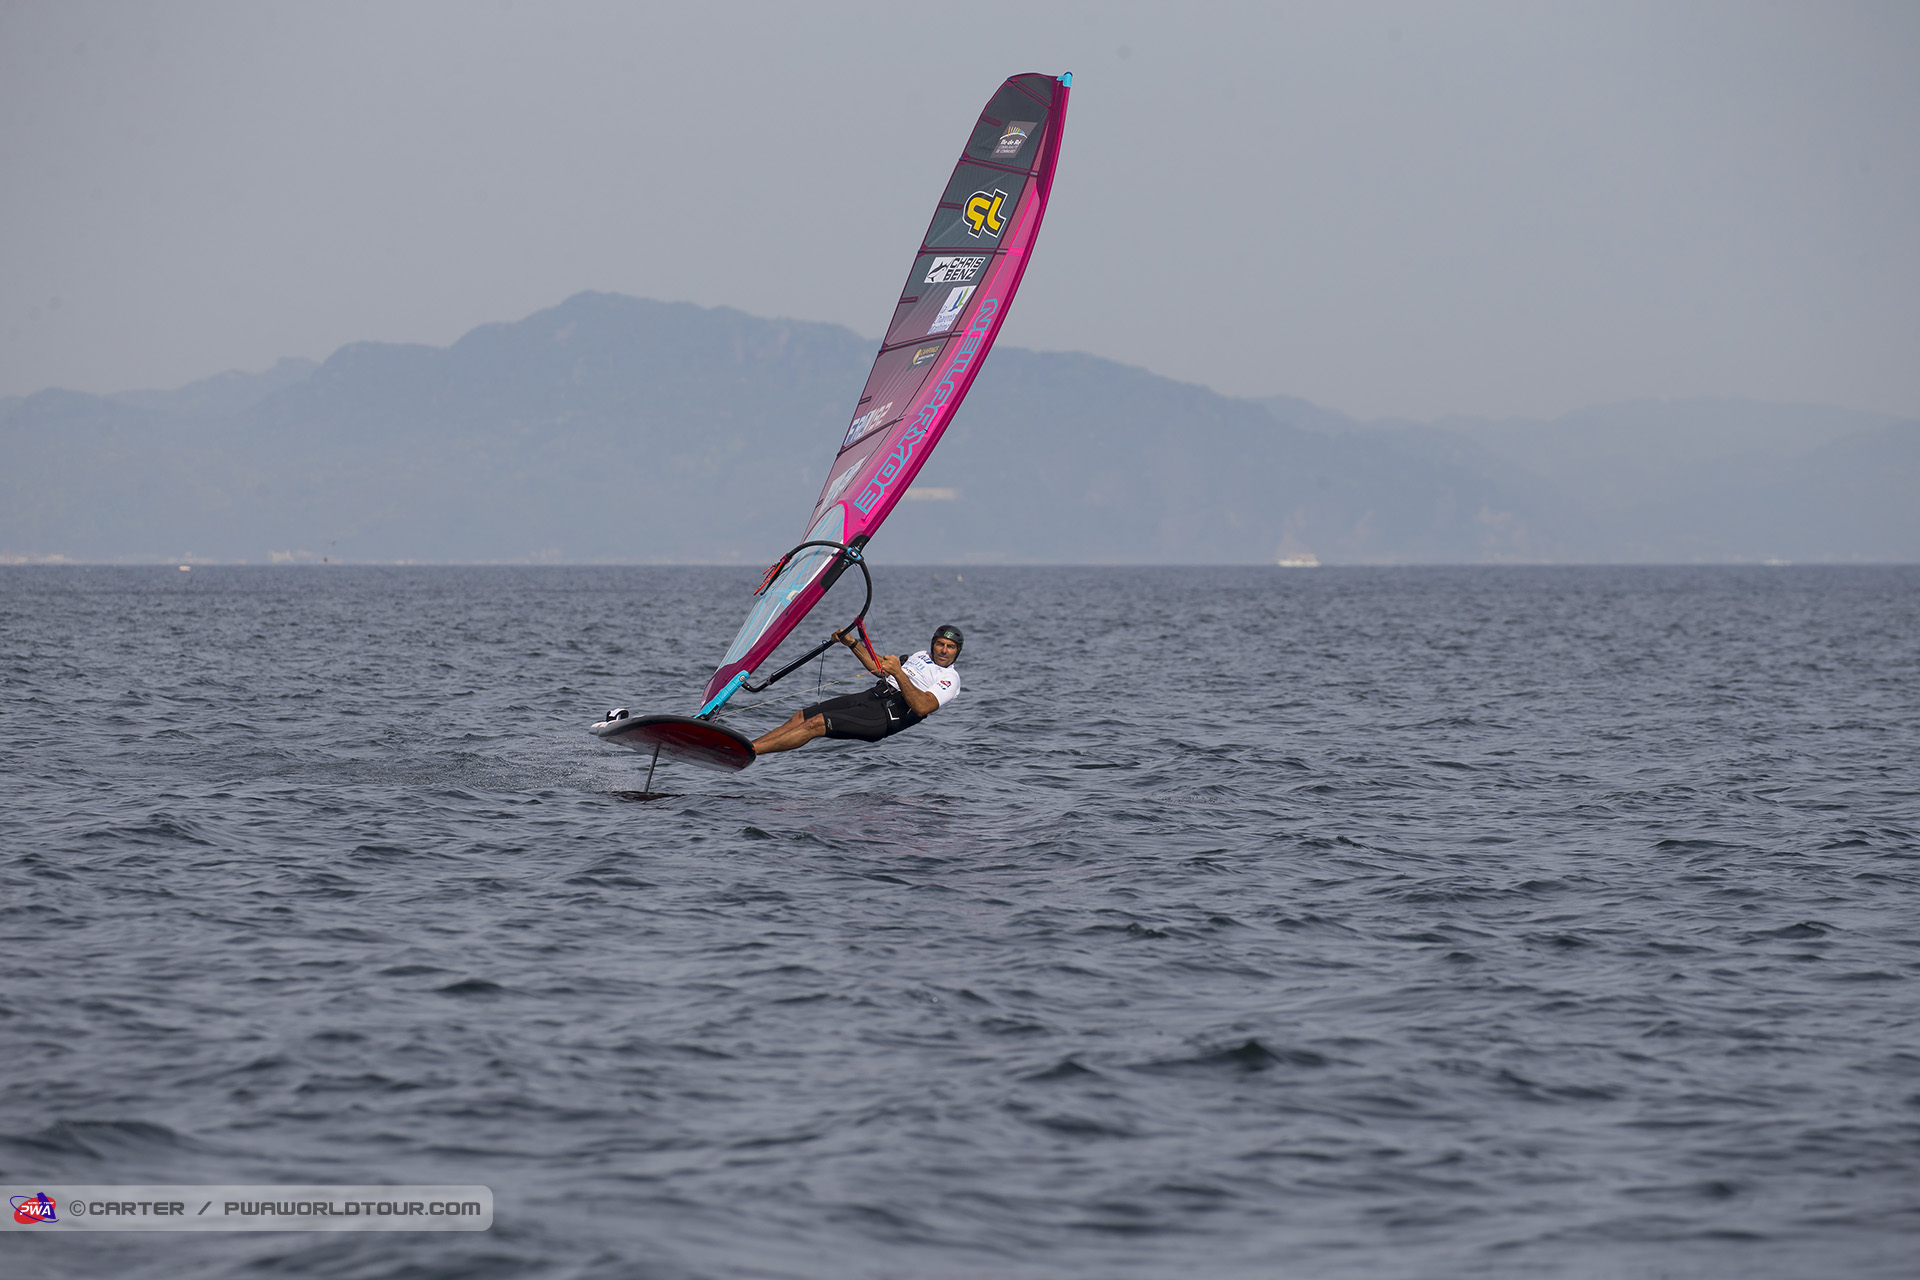 JP19_fl_Albeau_light_wind_action.jpg